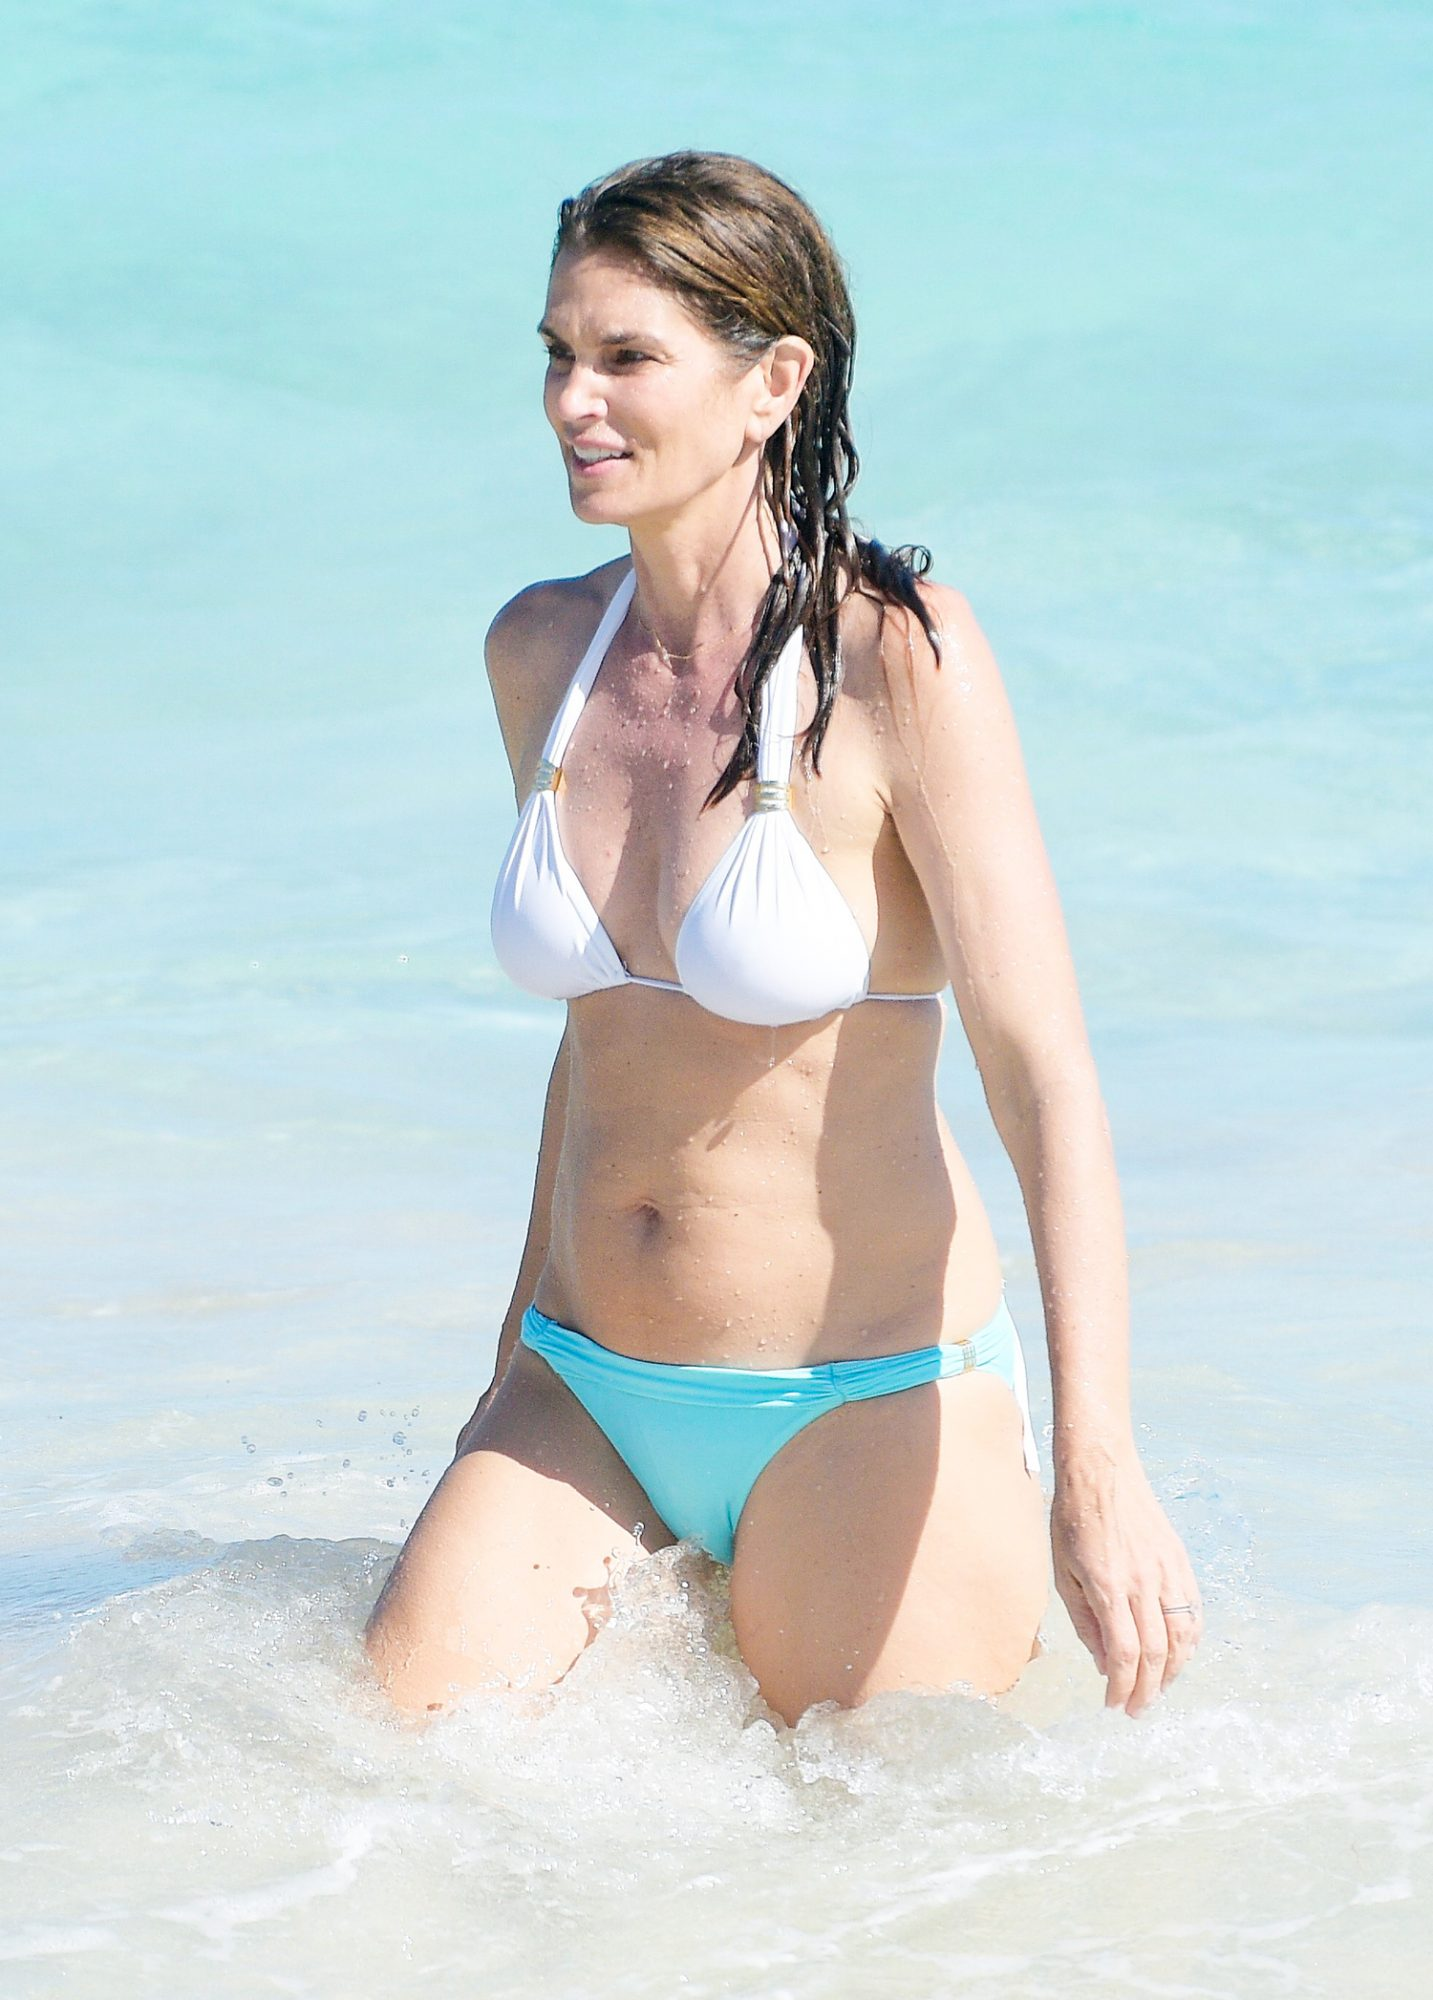 Cindy Crawford and Rande Gerber have fun in the sea while on holiday with Kaia